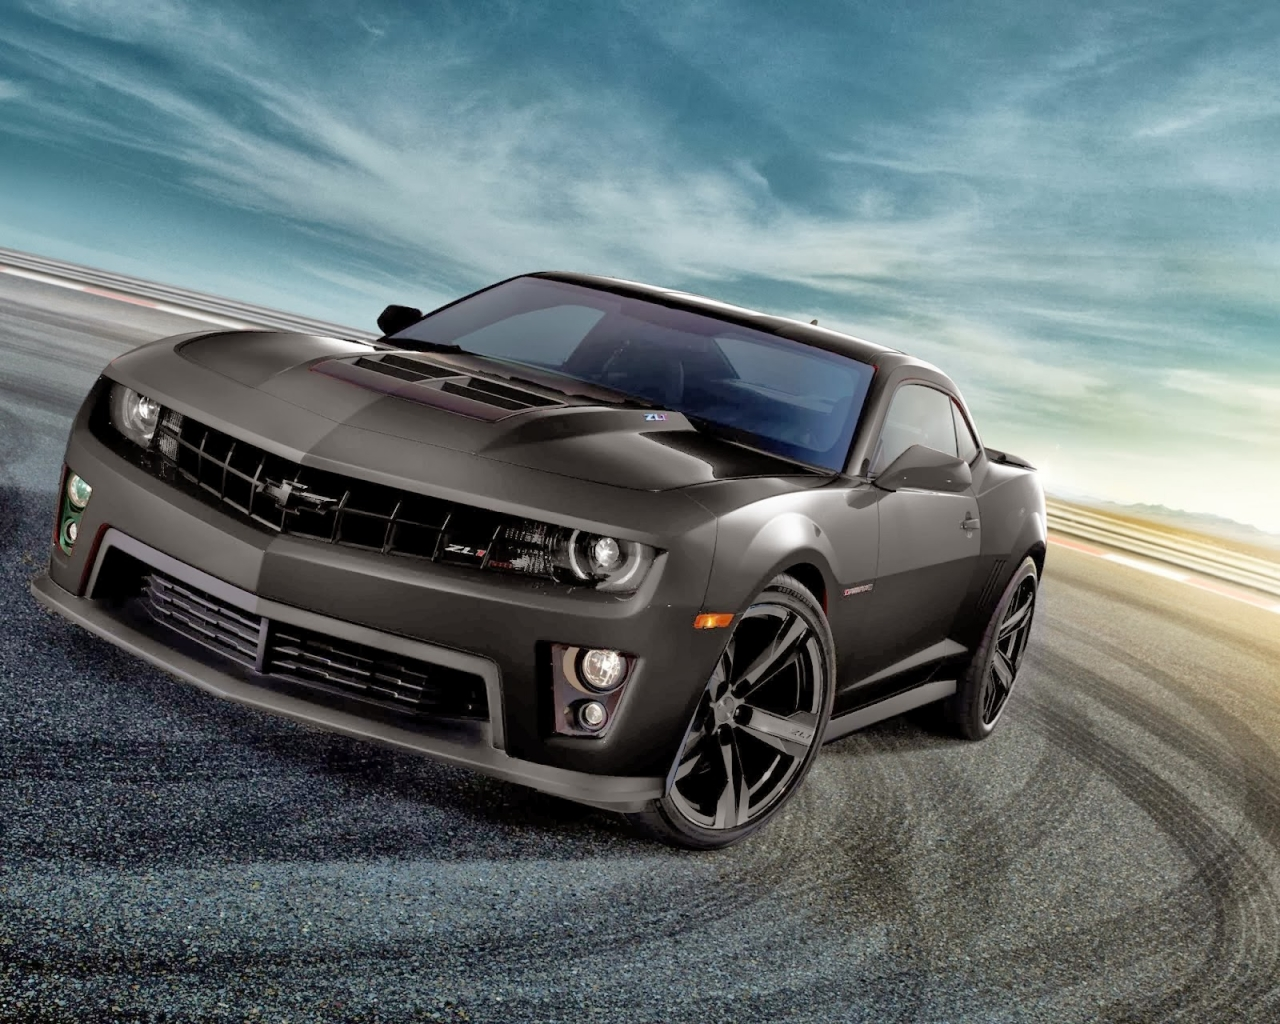 Camaro ZL1 HD 1280x1024   Vehiculos Autos   wallpapers HD 2947 1280x1024